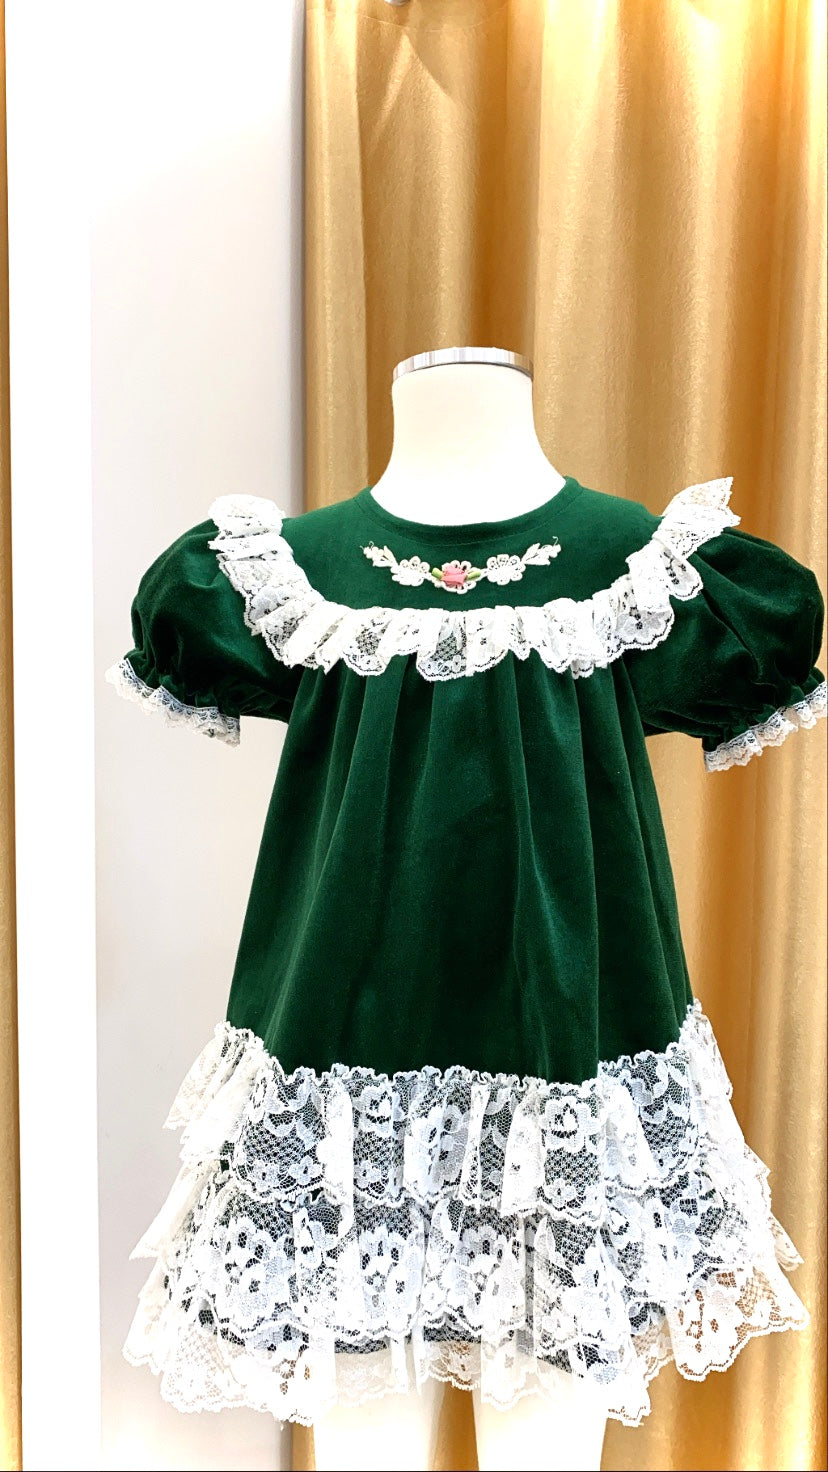 Girls - Vintage - Velvet and lace Ruffle Dress - Size 2-3